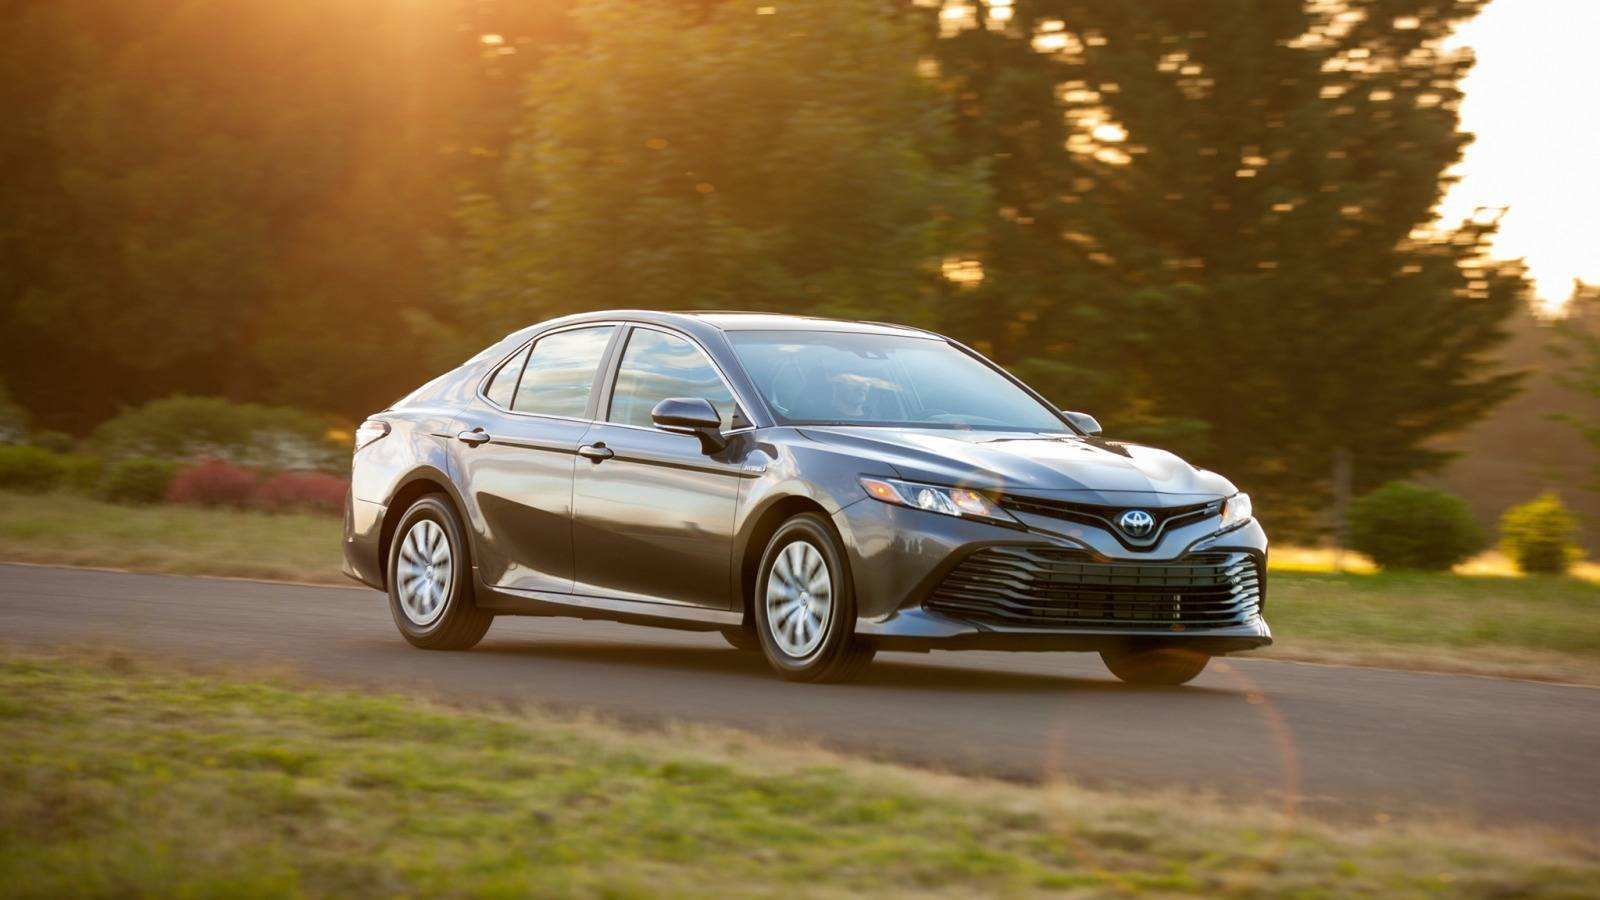 93 All New 2019 Toyota Camry Se Hybrid Price And Release Date